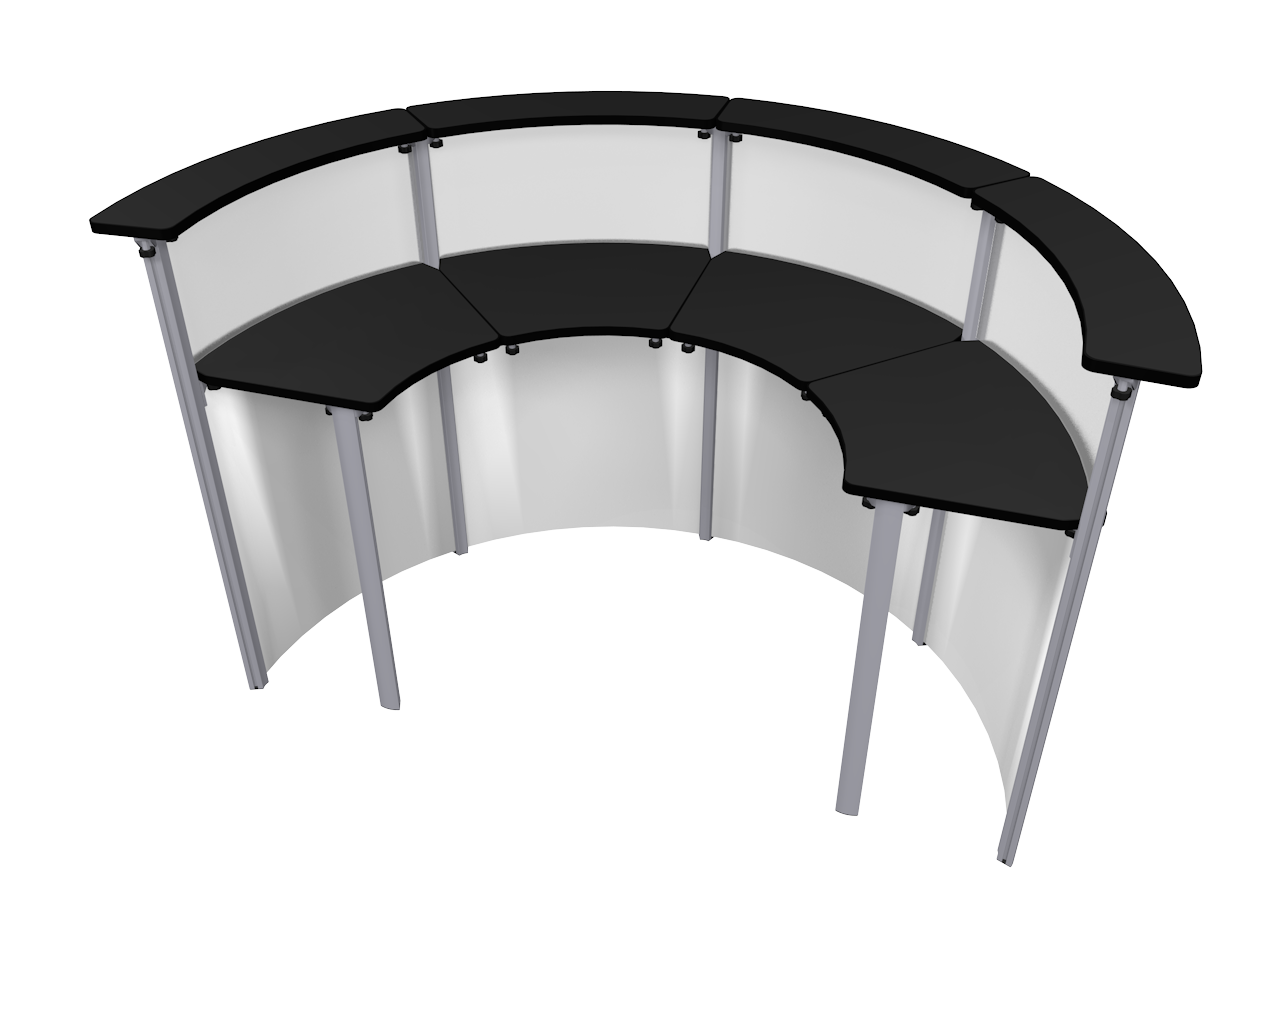 Exhibitline RD45.4 Reception Desk